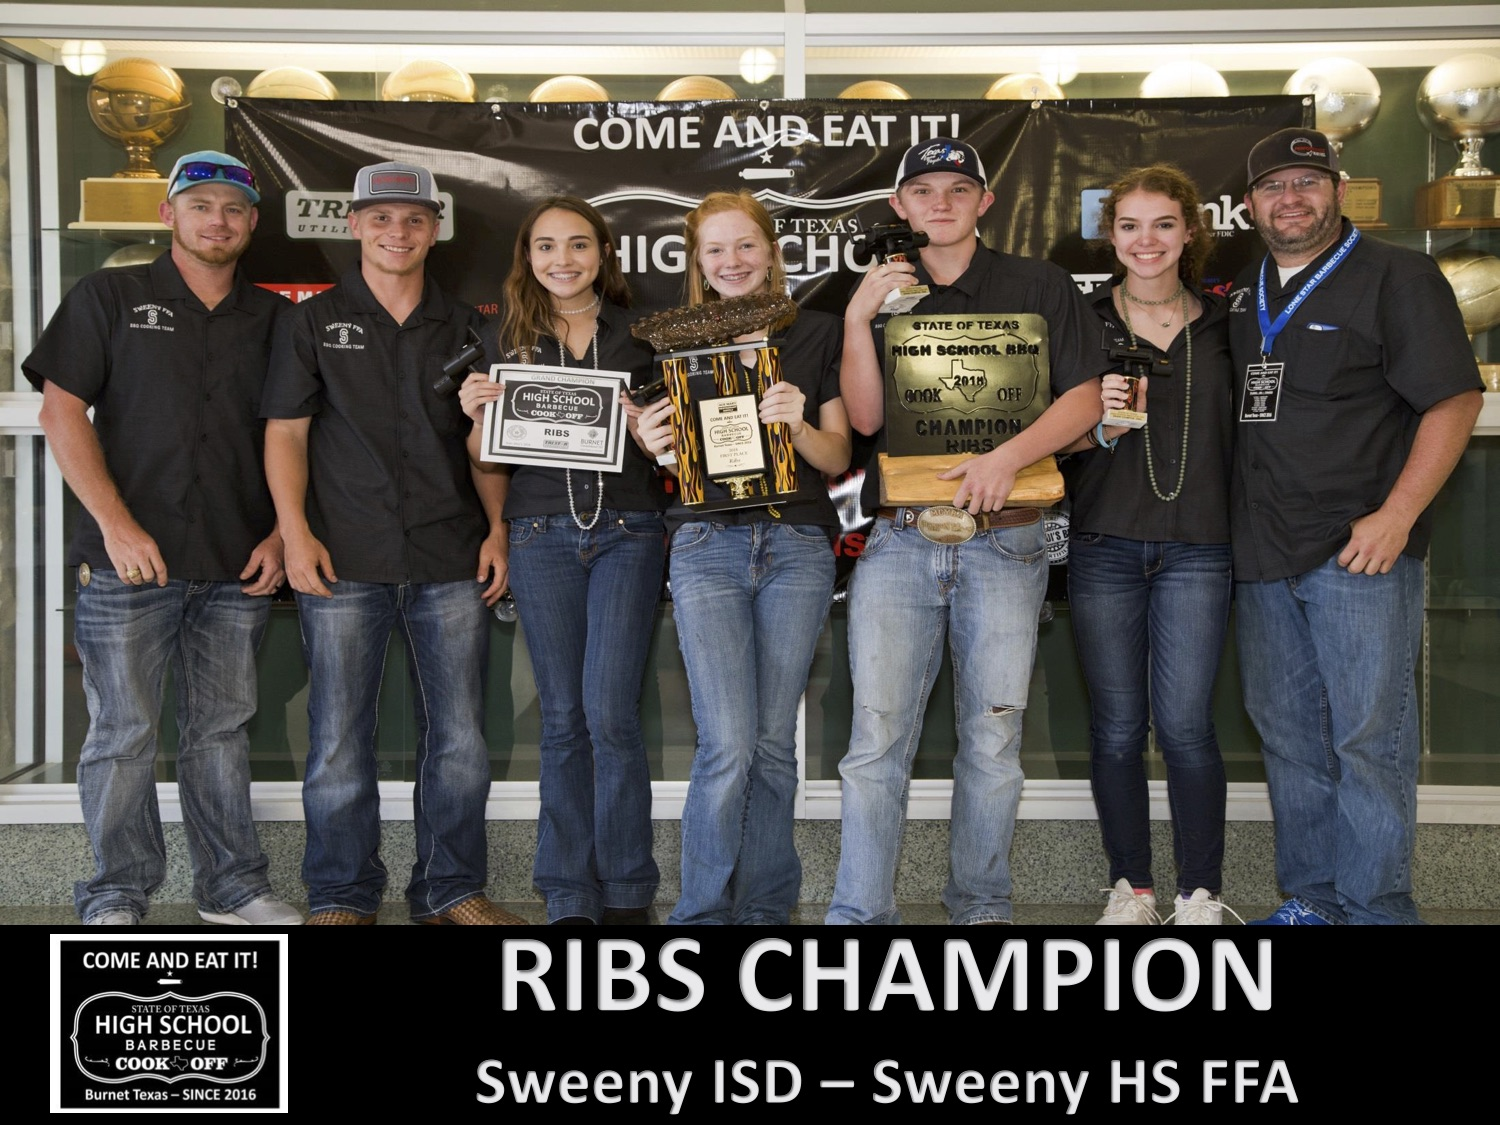 2018 Texas HS Ribs Winner